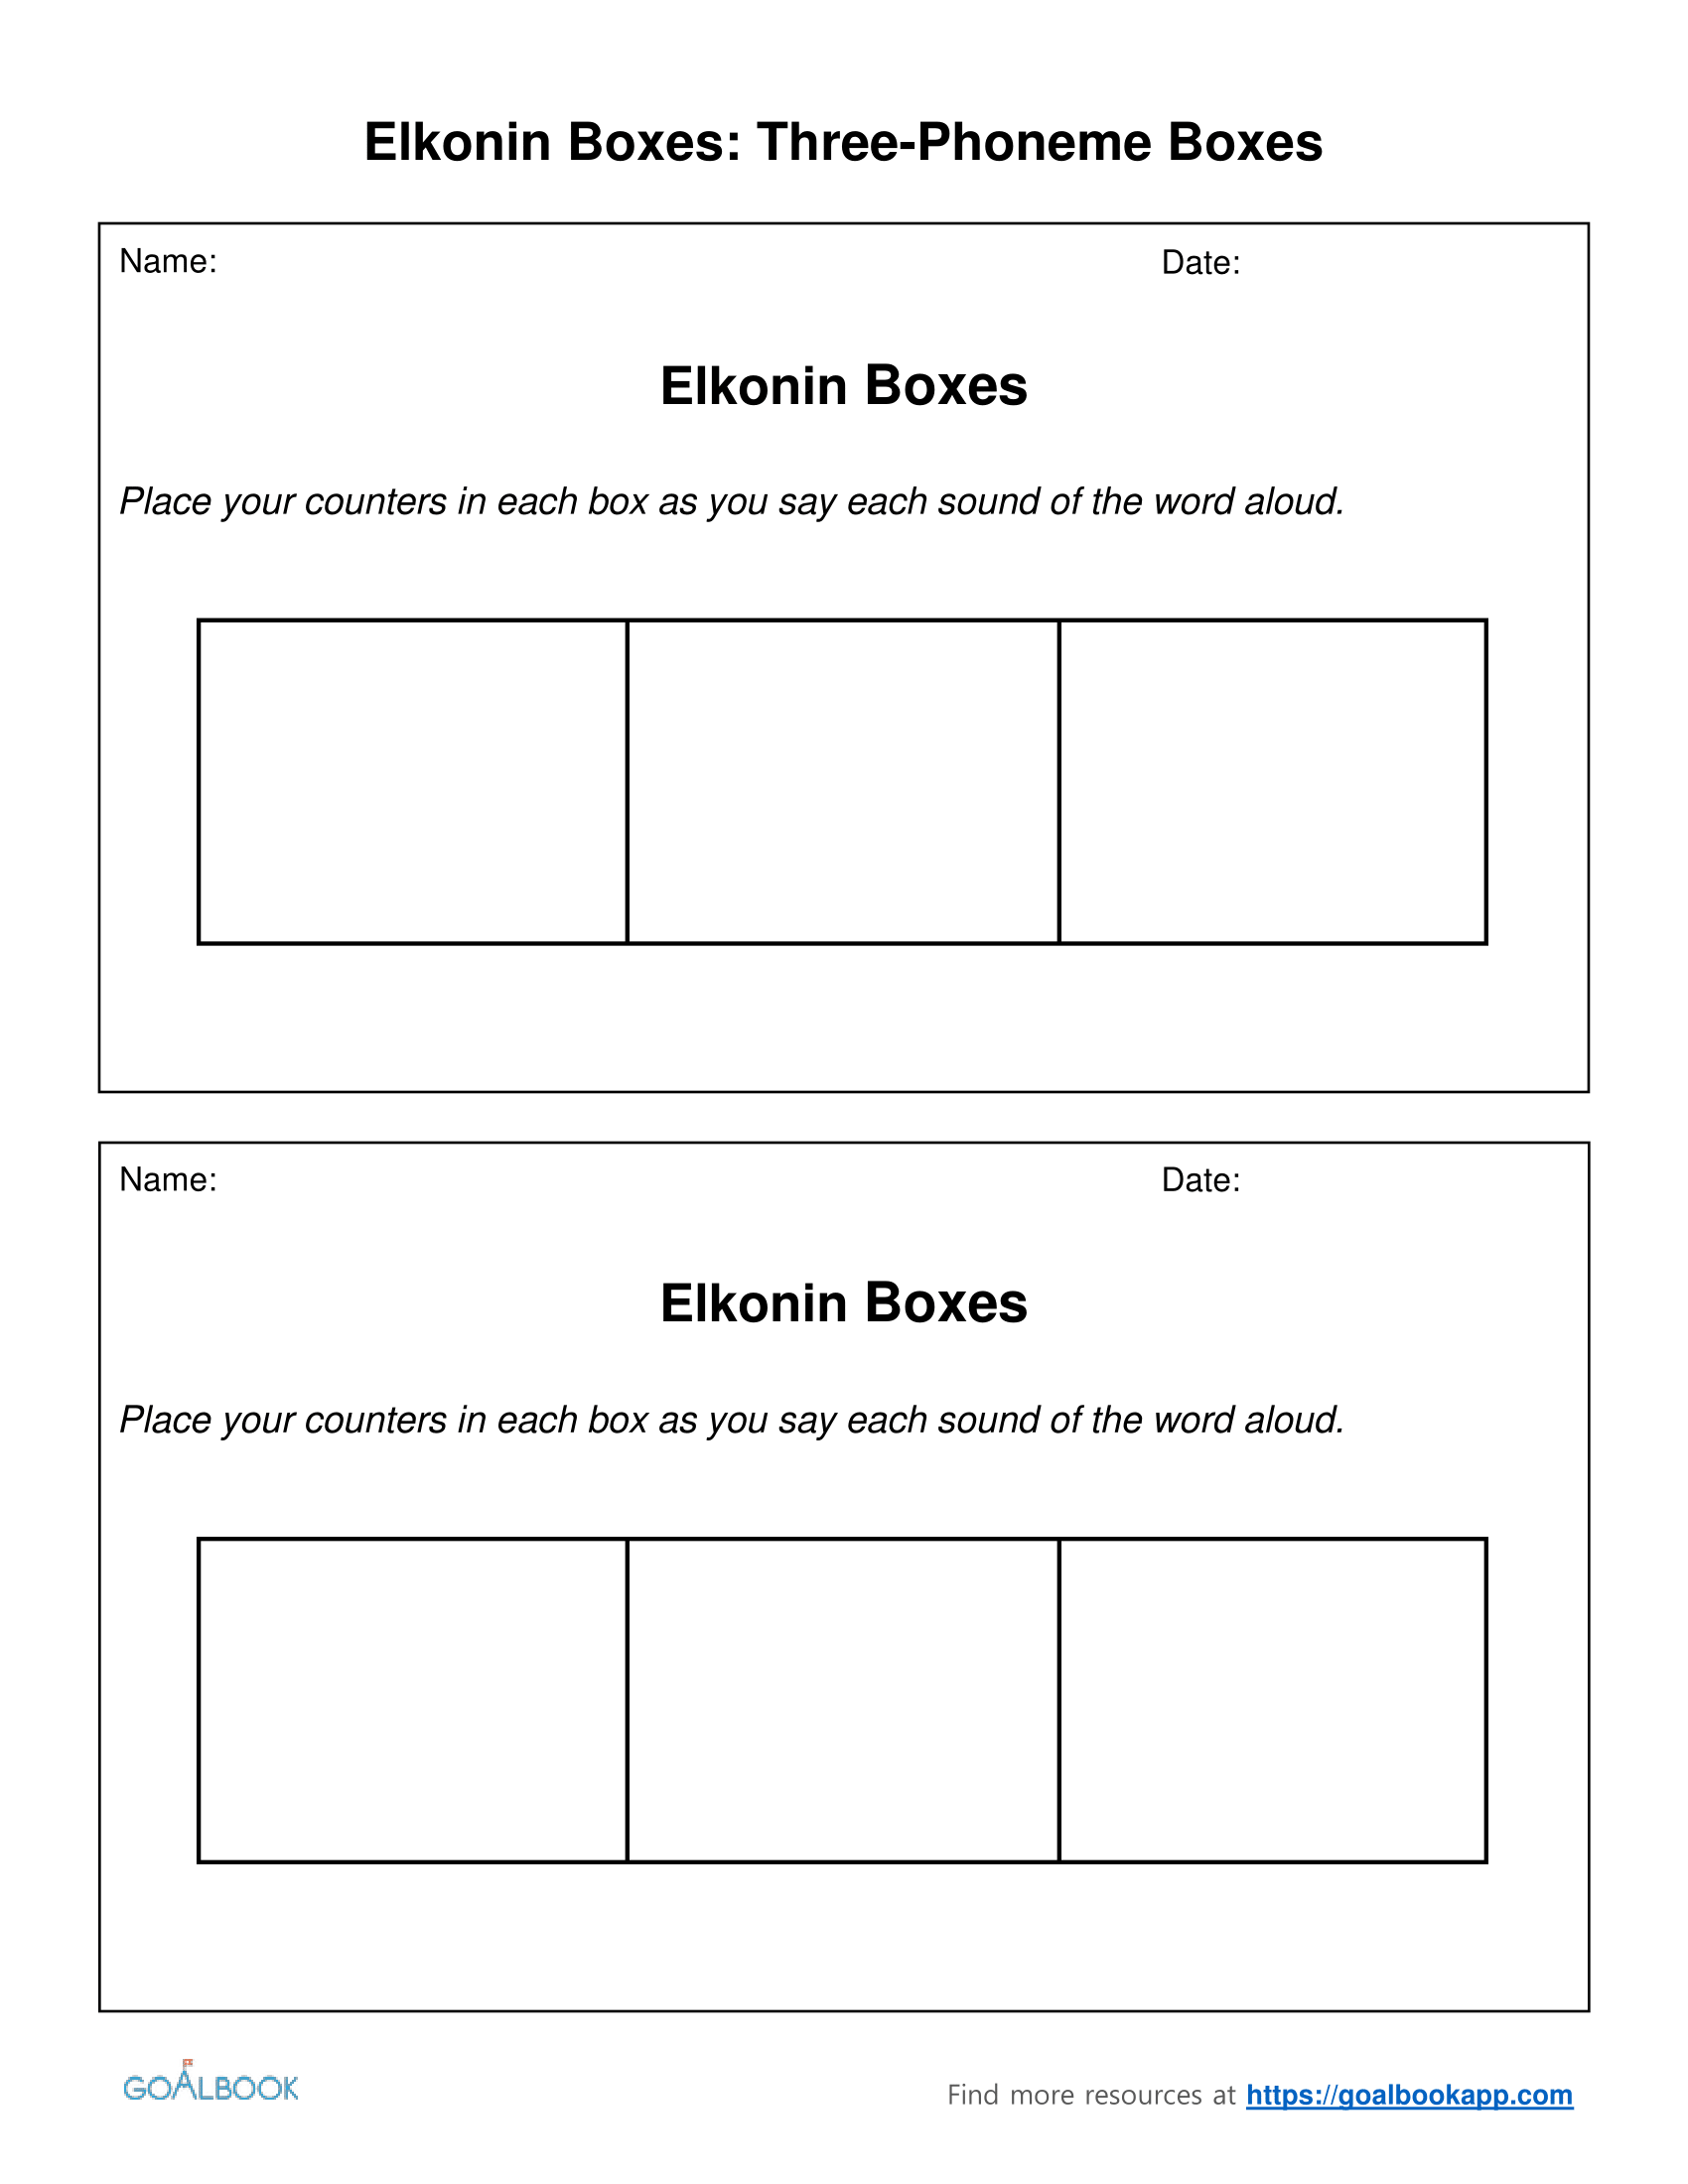 Worksheets Phoneme Worksheets elkonin boxes udl strategies three phoneme and worksheets